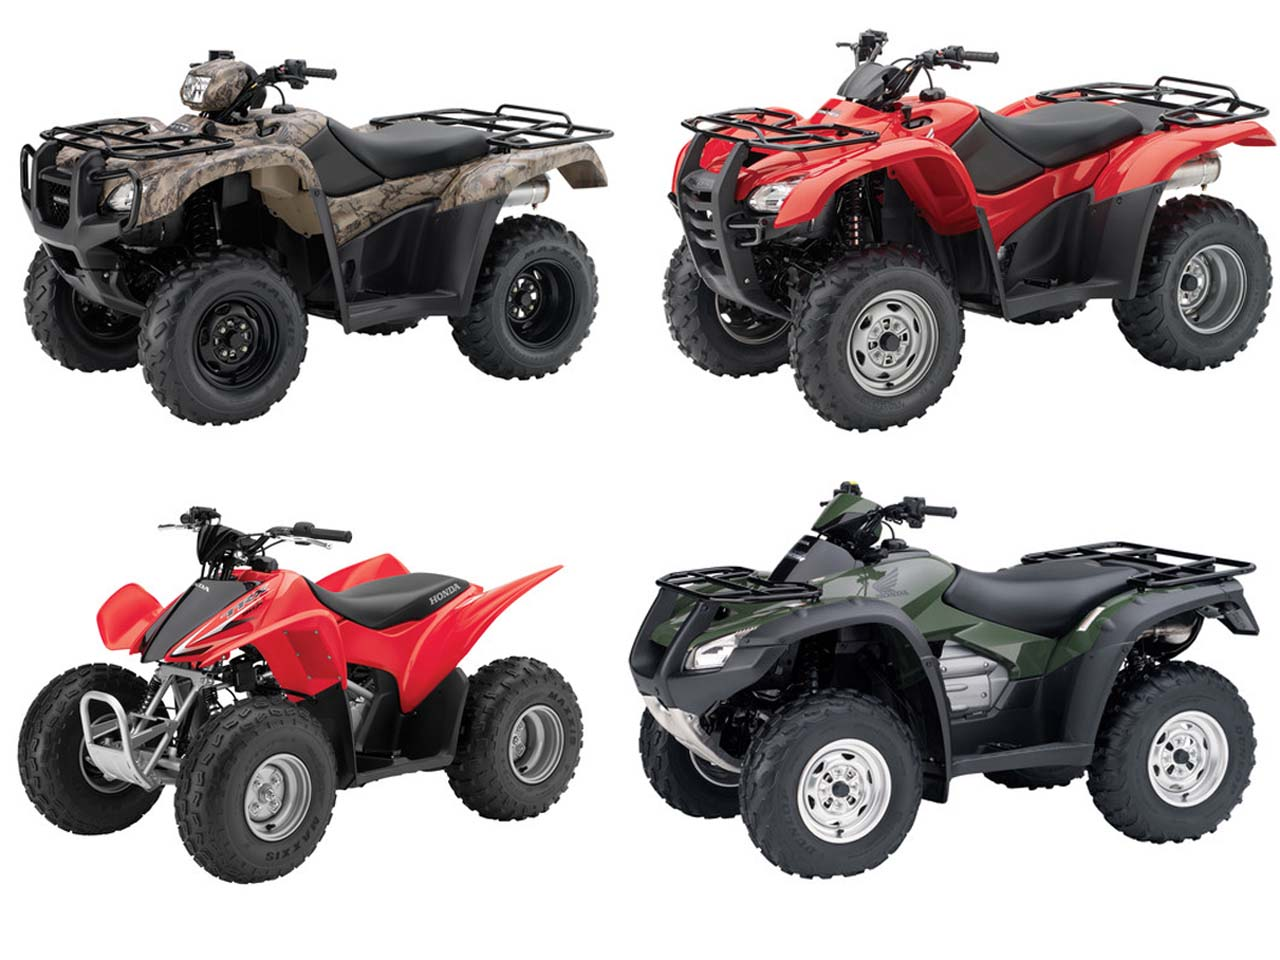 Honda Announces First New Model Releases For 2013